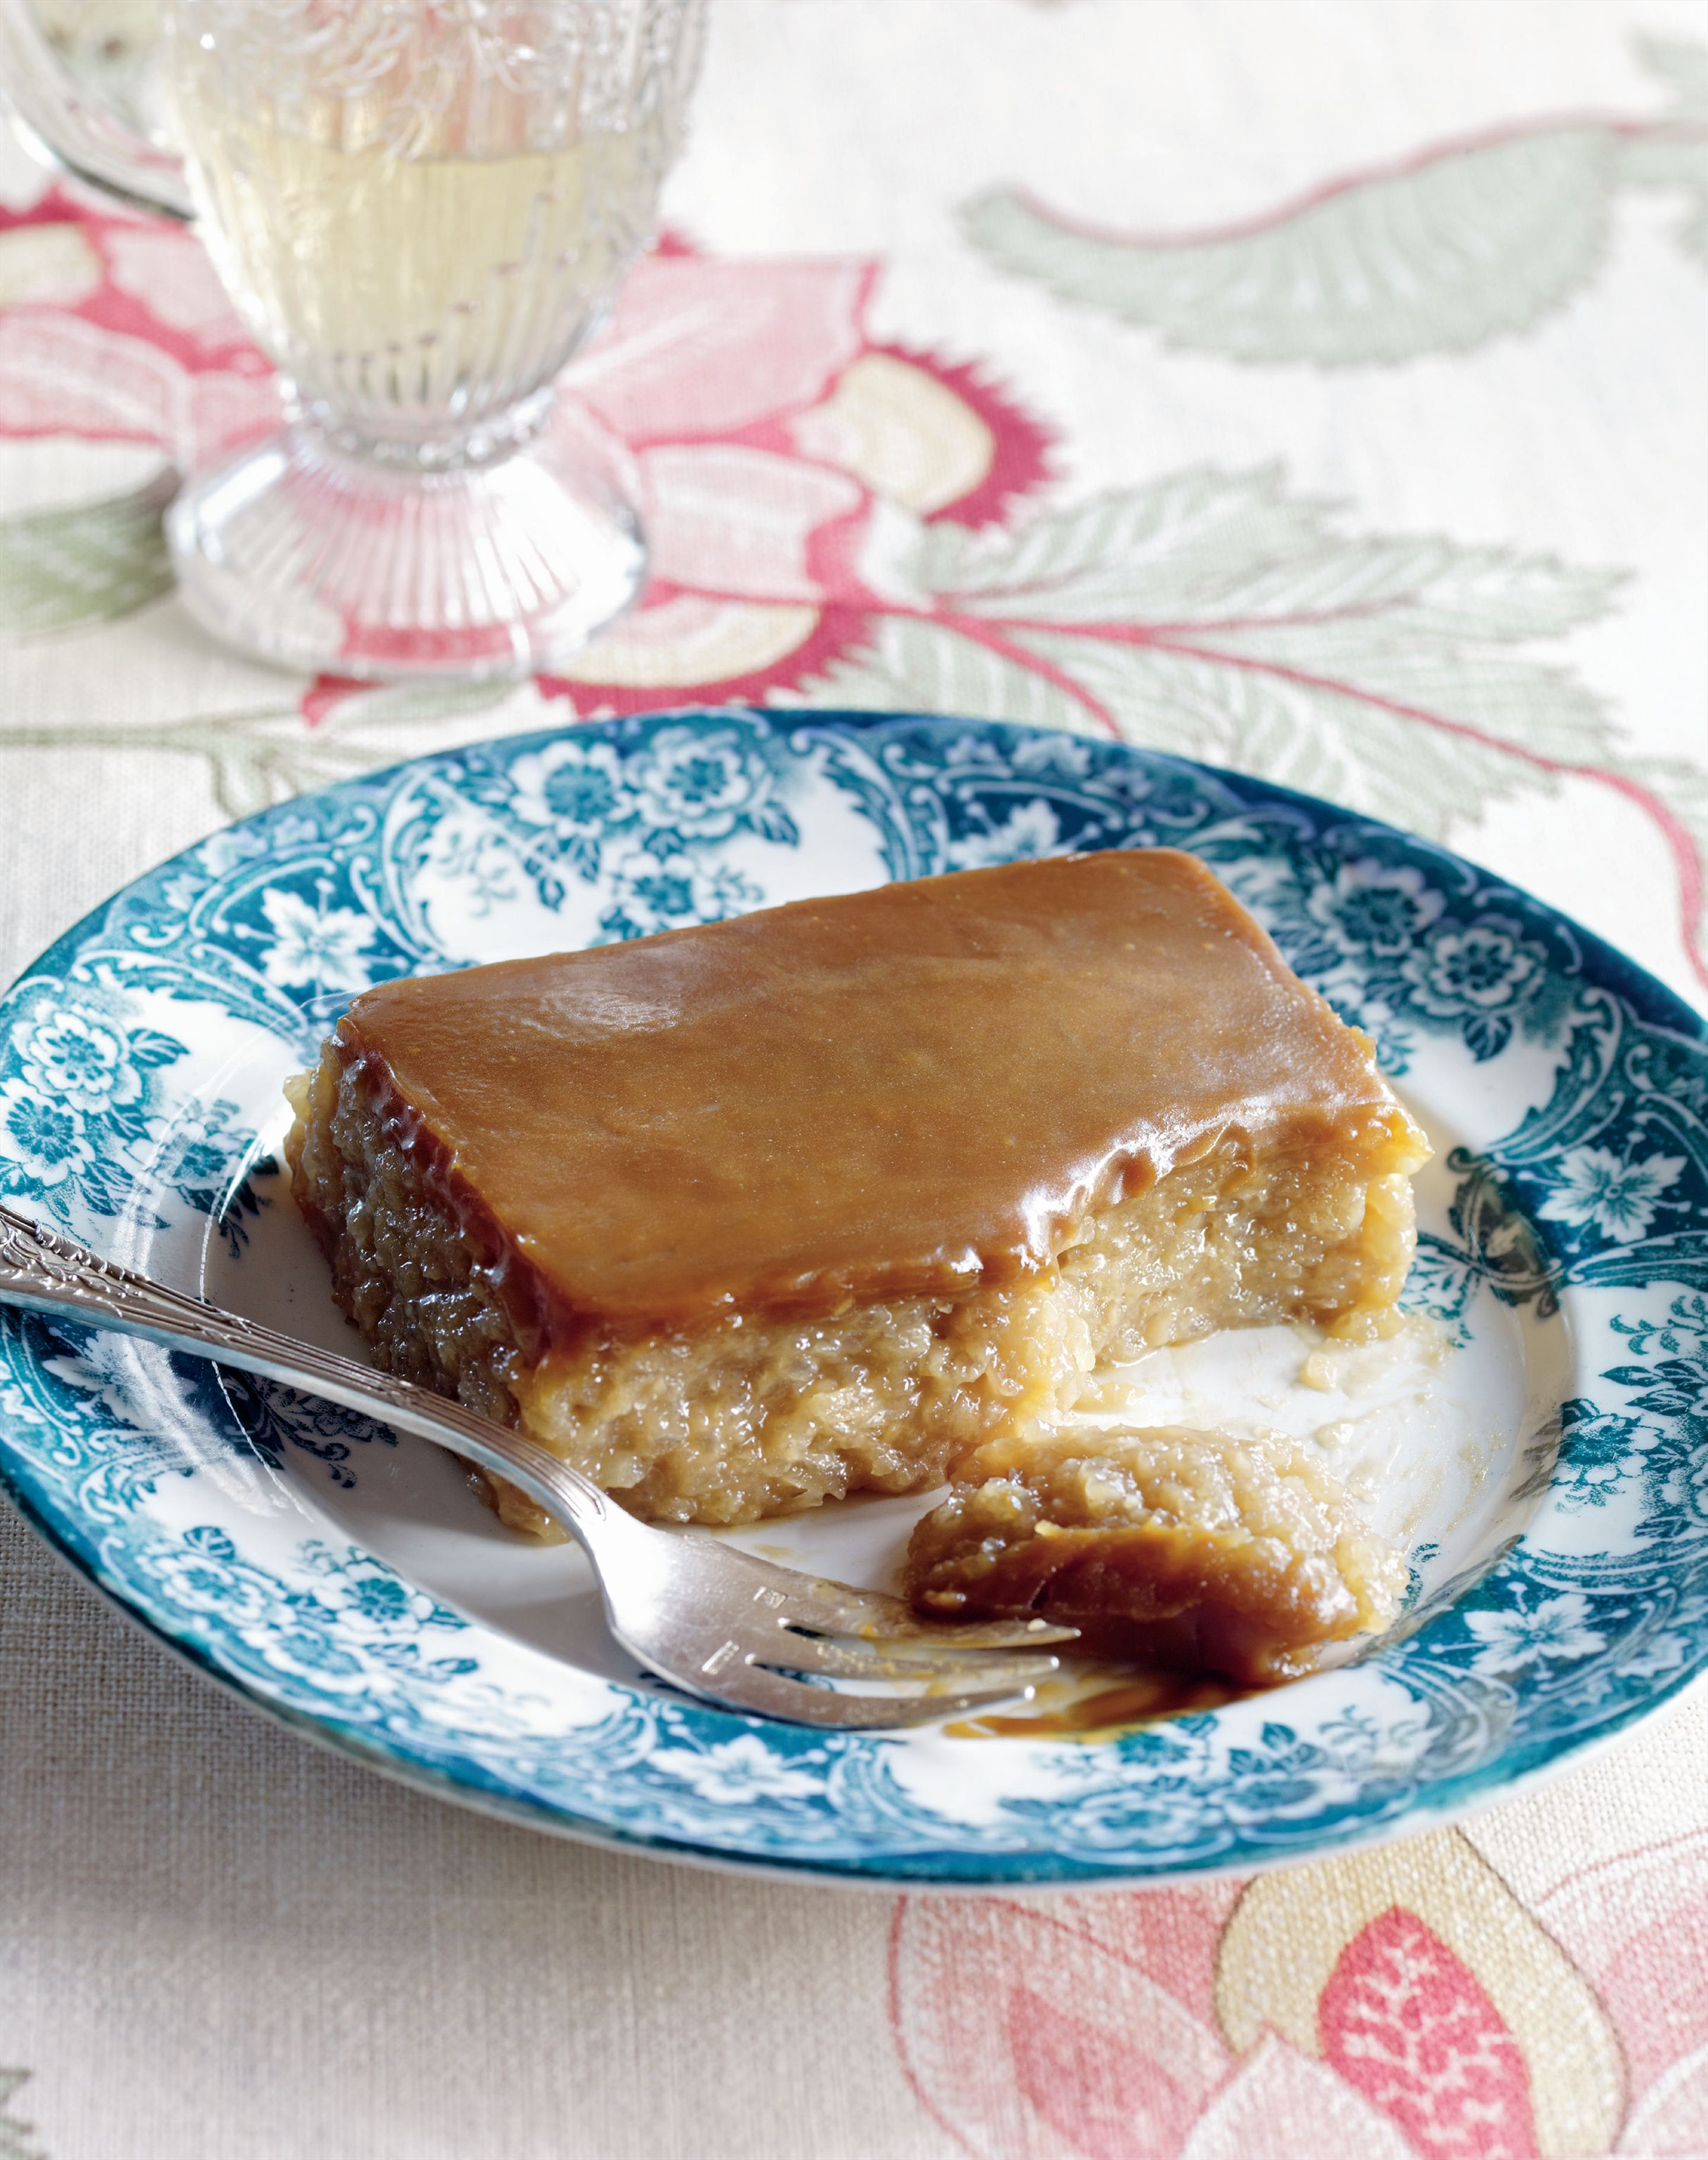 Coconut caramel sticky rice cake